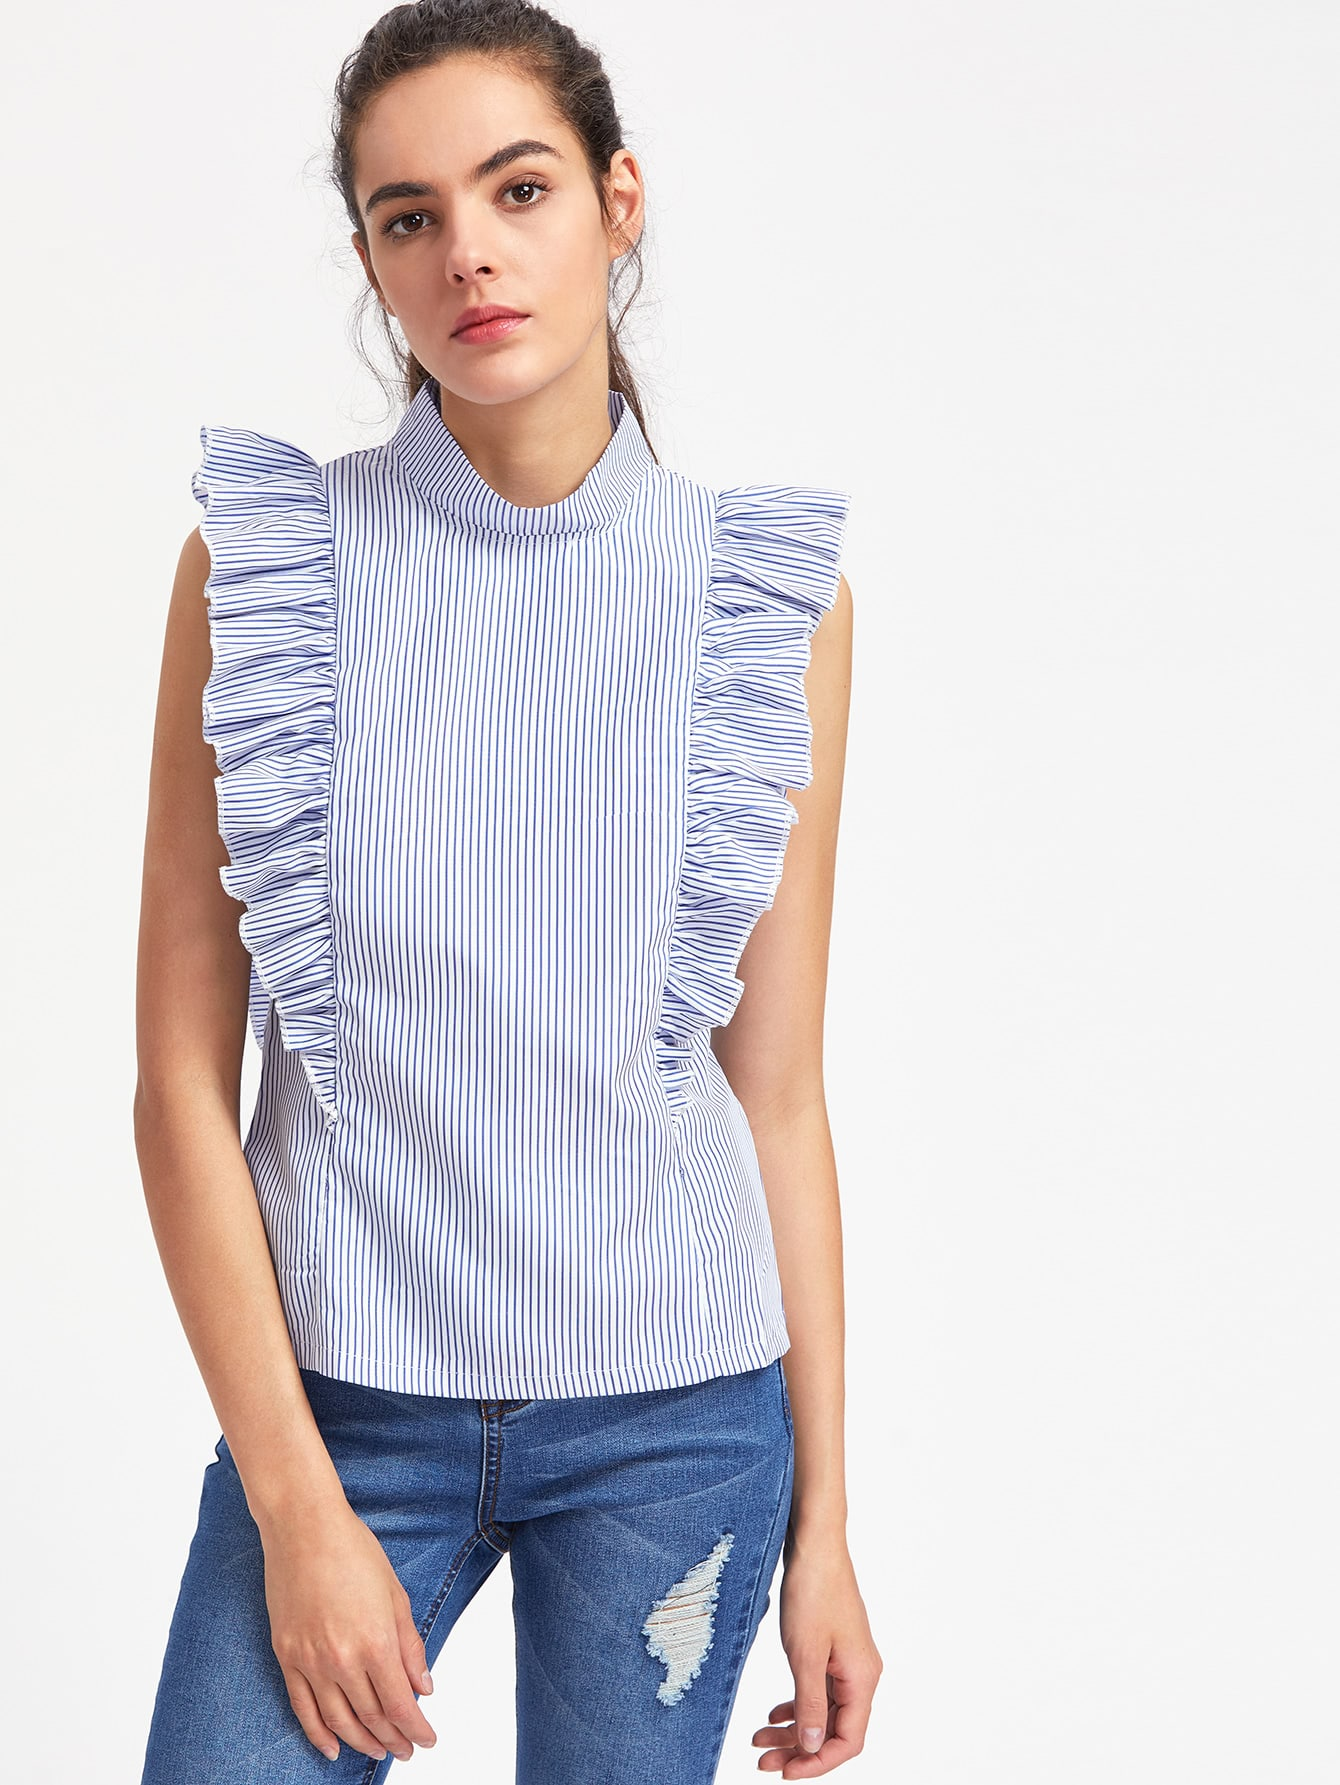 Vertical Striped Exaggerated Frill Trim Top blouse170510106